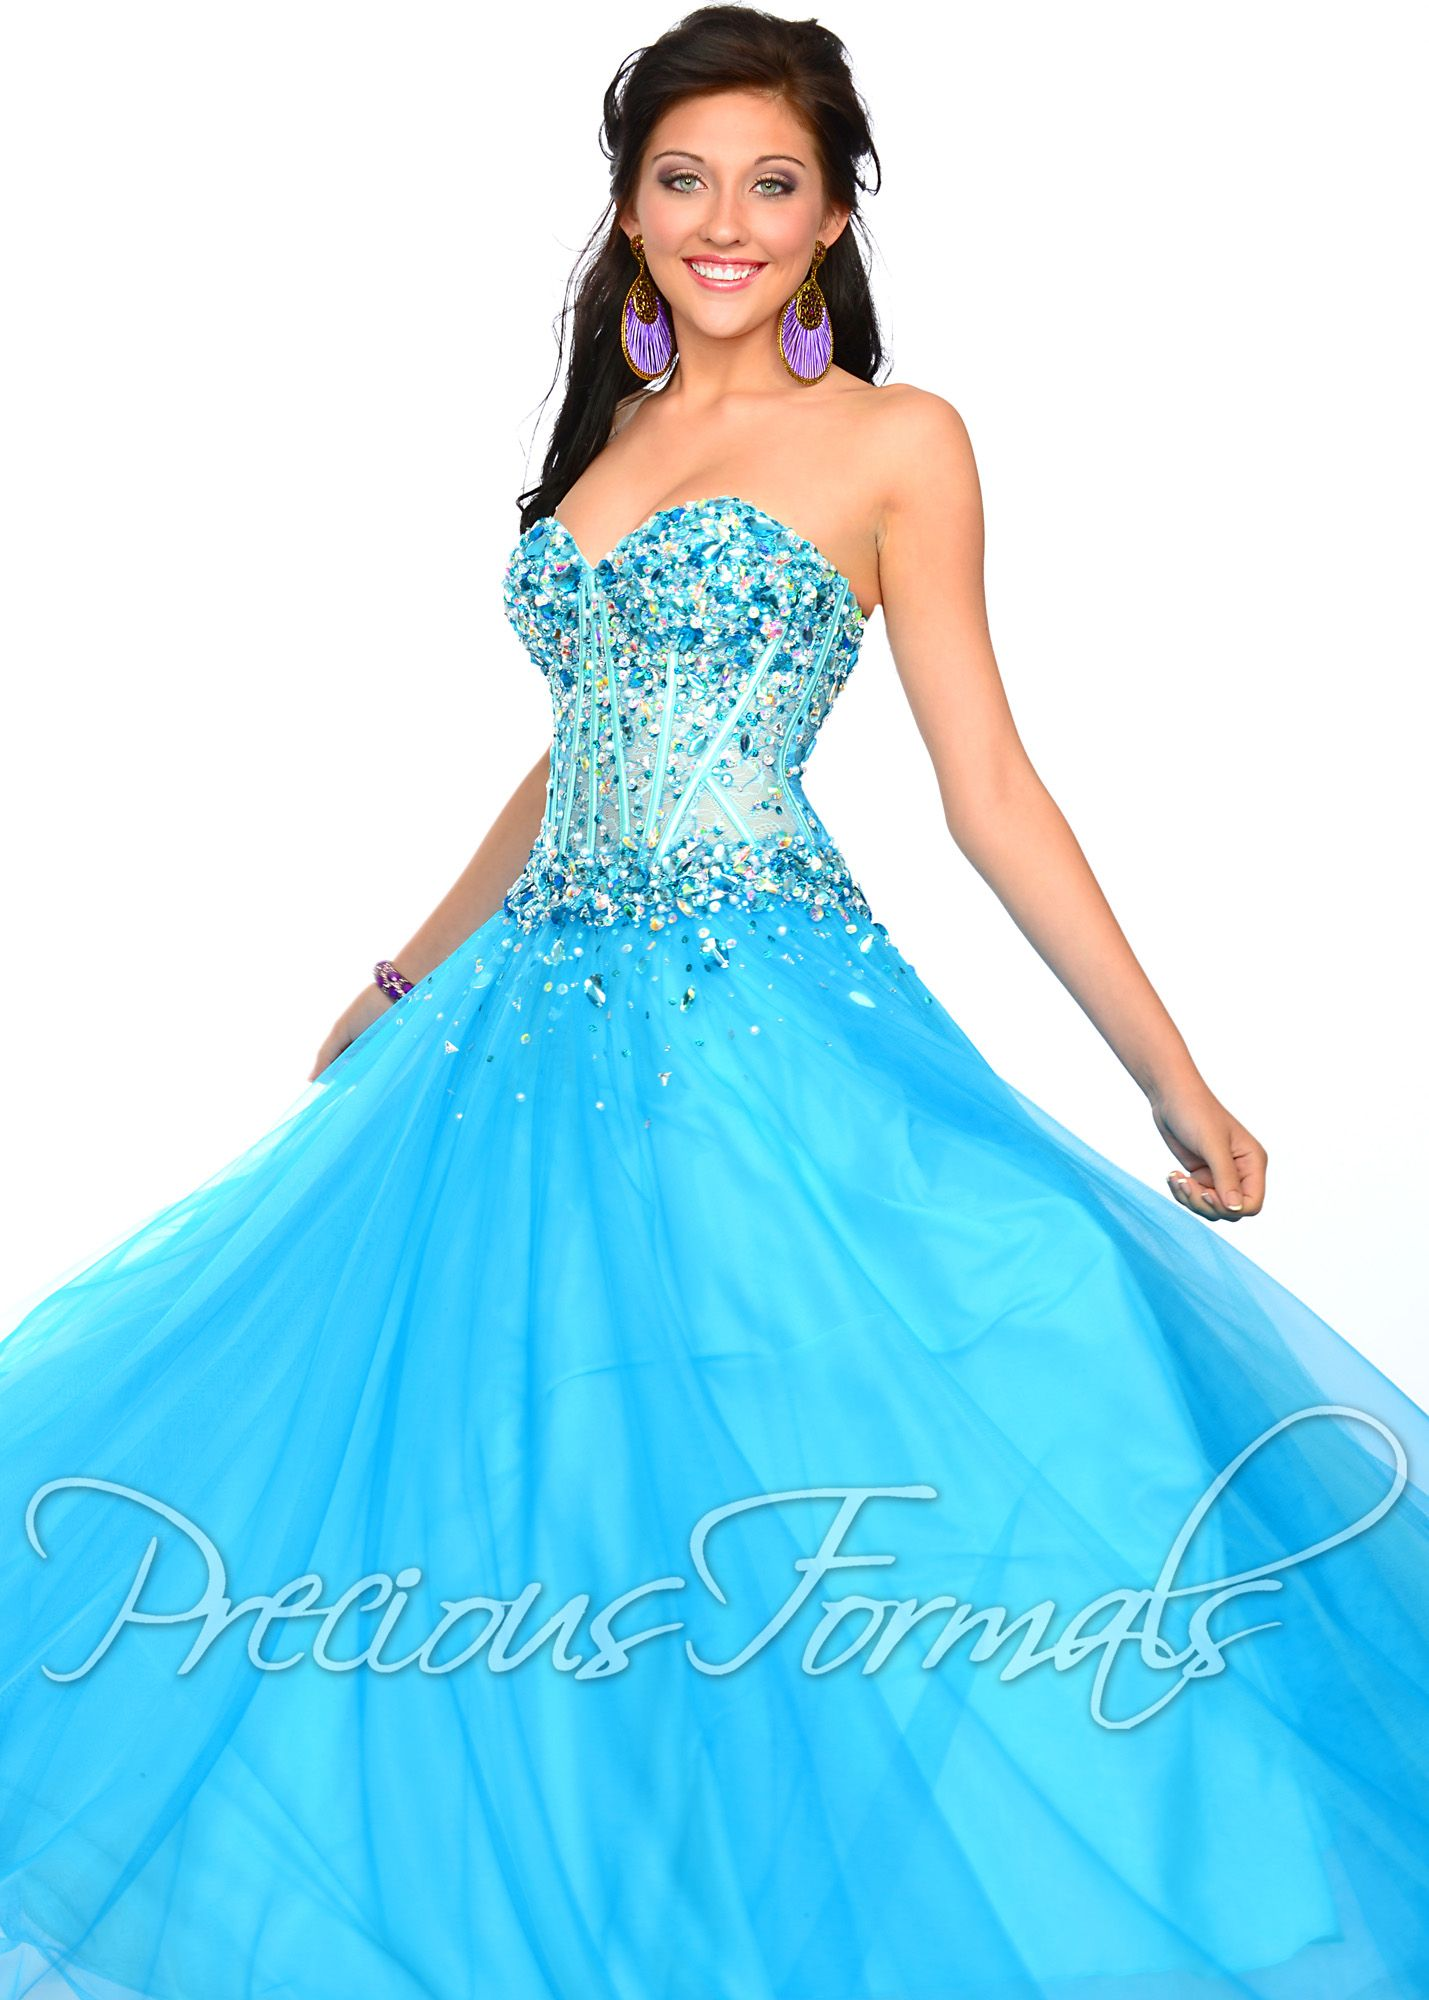 thepromdresses Precious Formals O10534 - Turquoise Strapless Lace ...